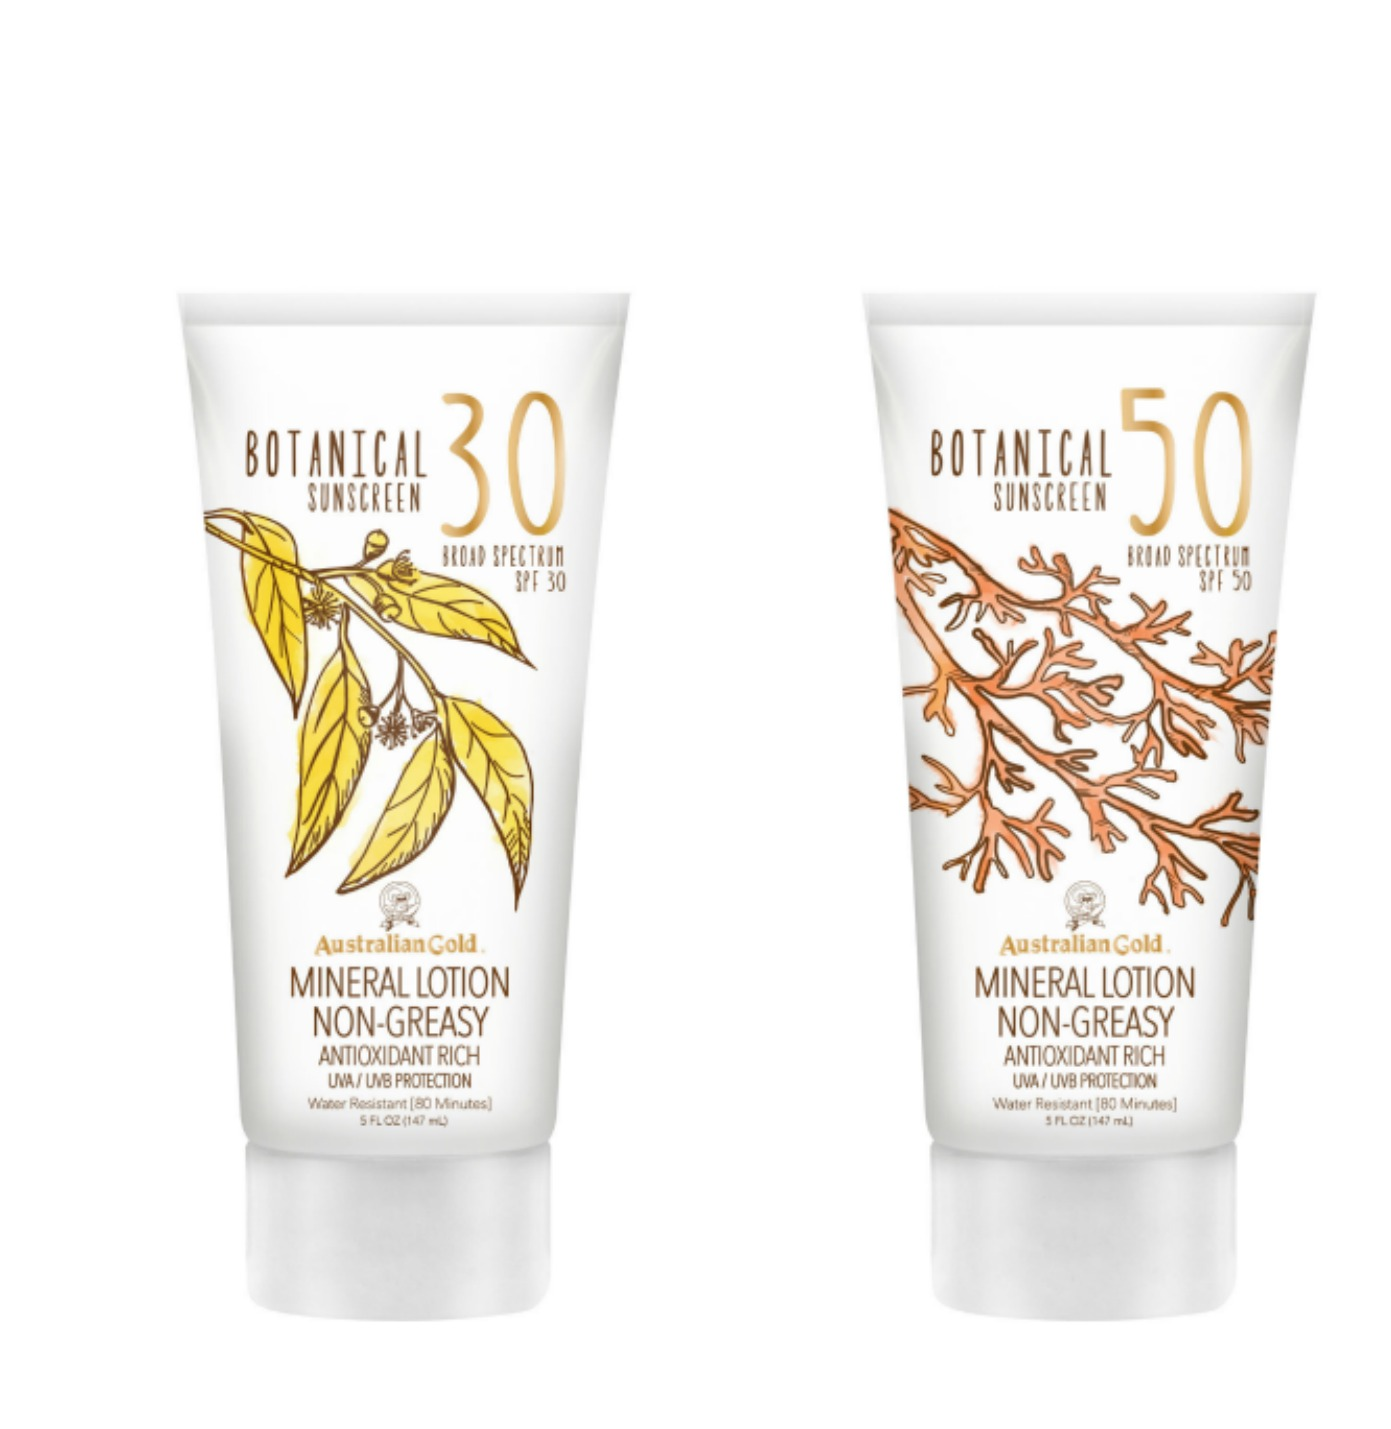 Tinted Mineral Face Lotion SPF30 by ULTA Beauty #10